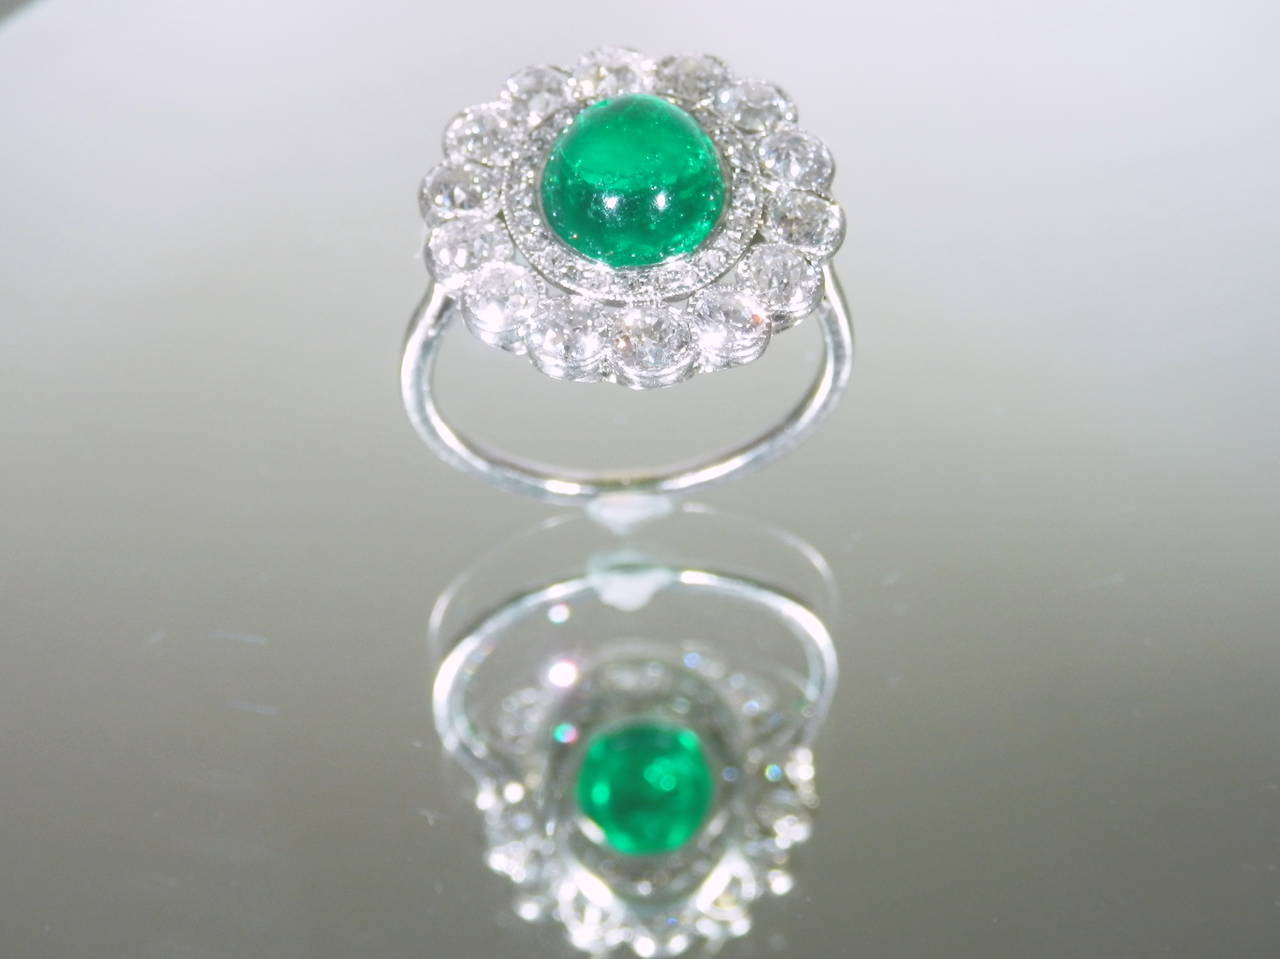 1920s emerald diamond platinum ring for sale at 1stdibs for What is platinum jewelry made of